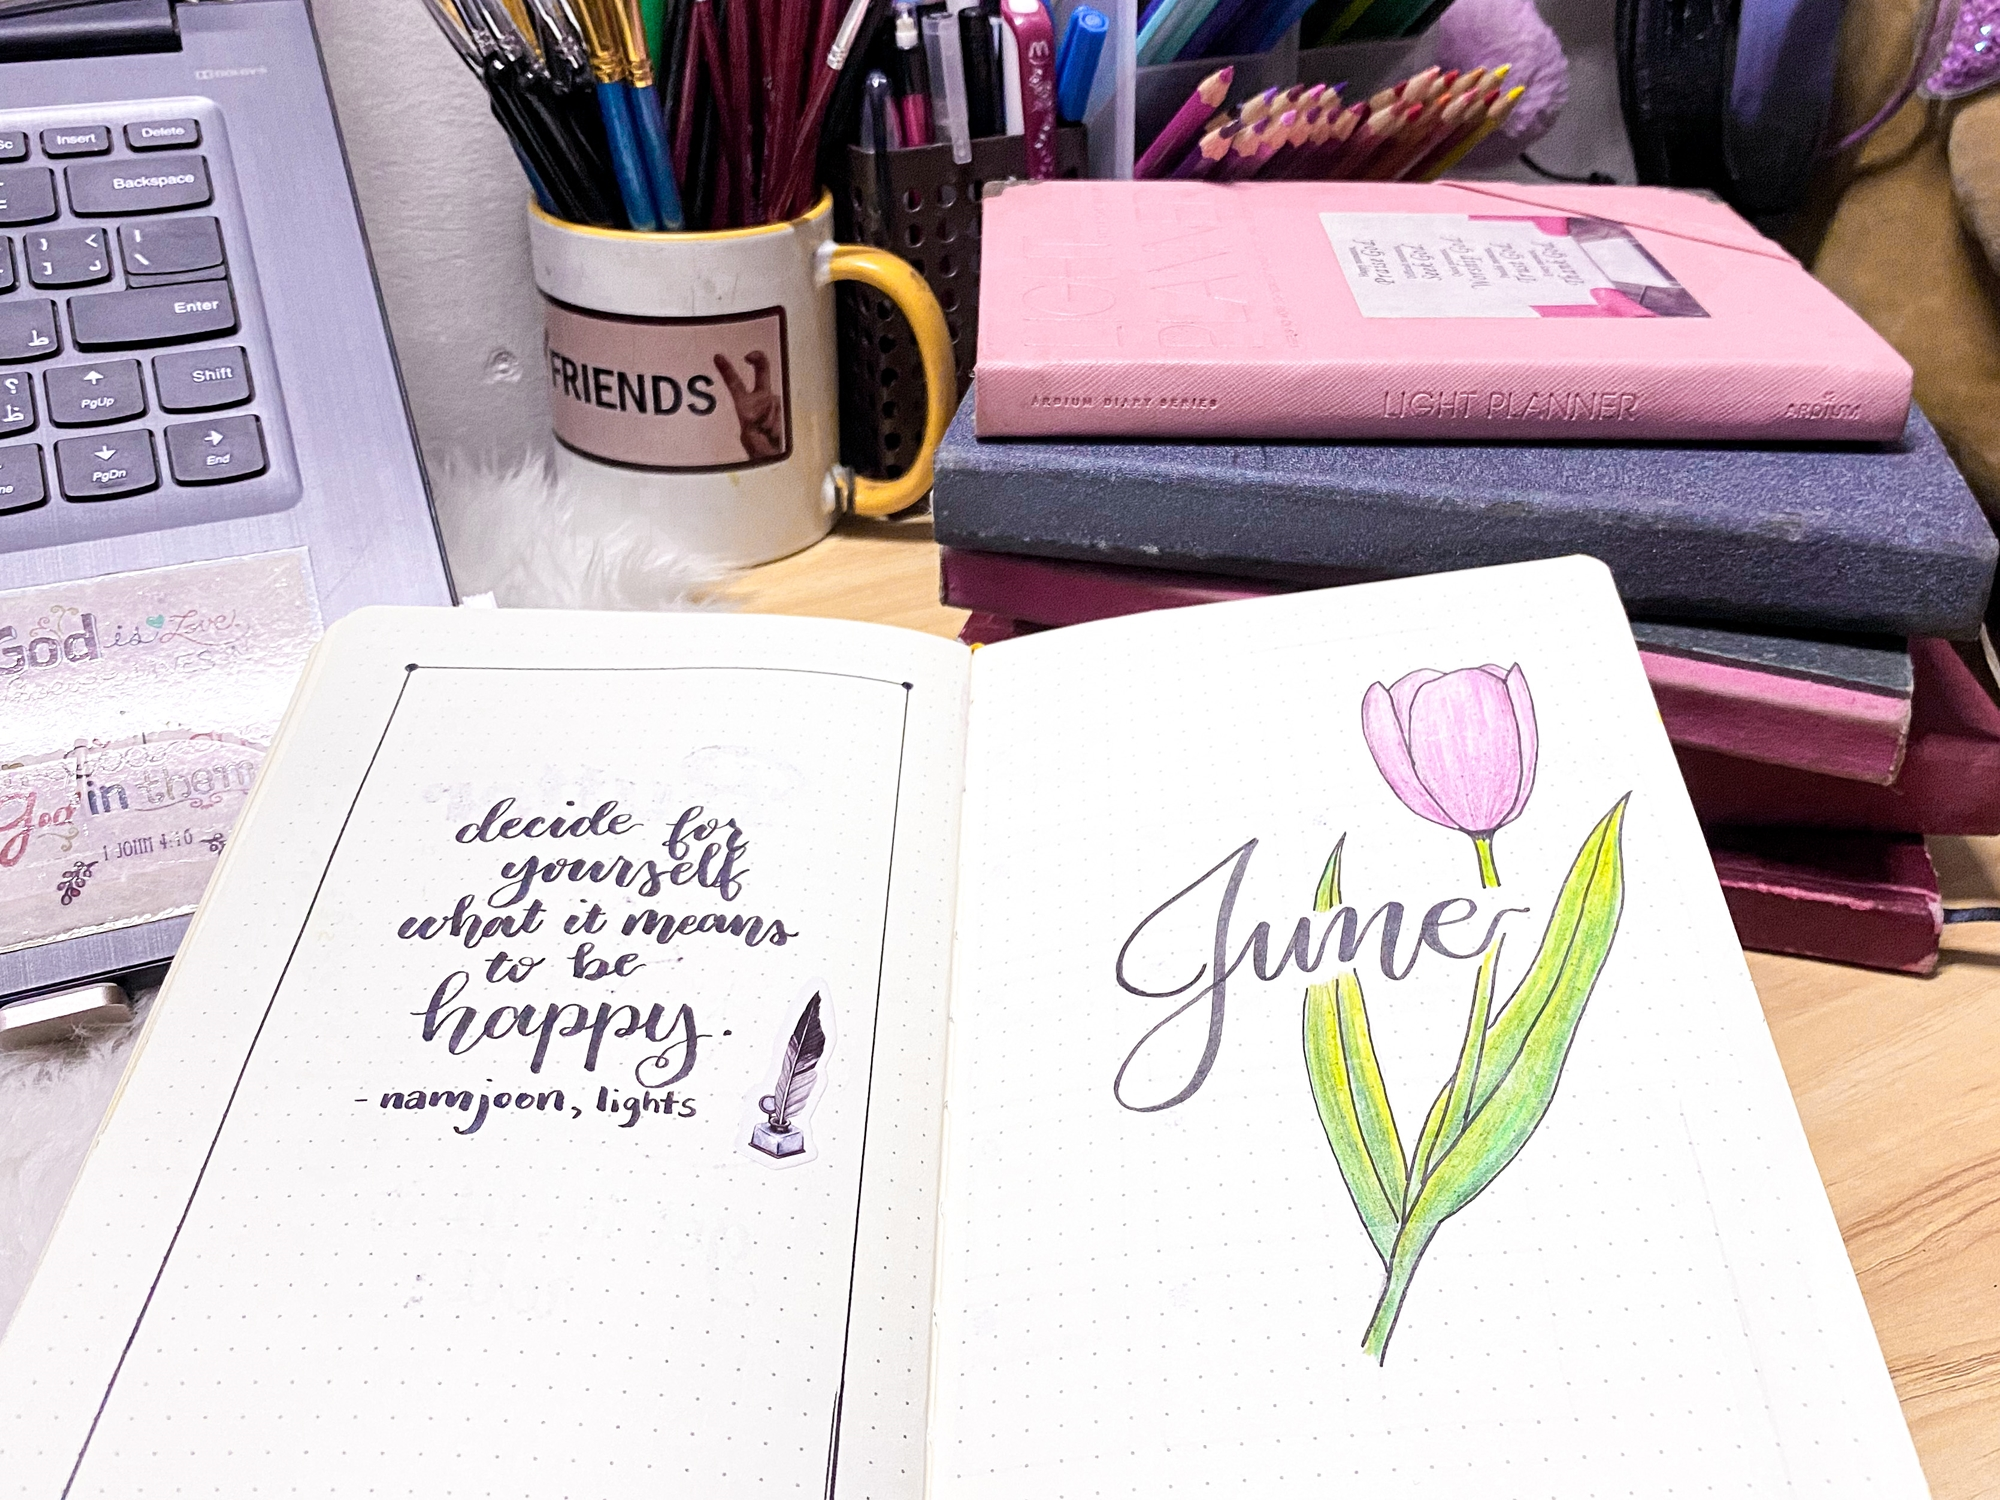 """Open journal on desk that says """"decide for yourself what it means to be happy."""" namjoon, lights"""